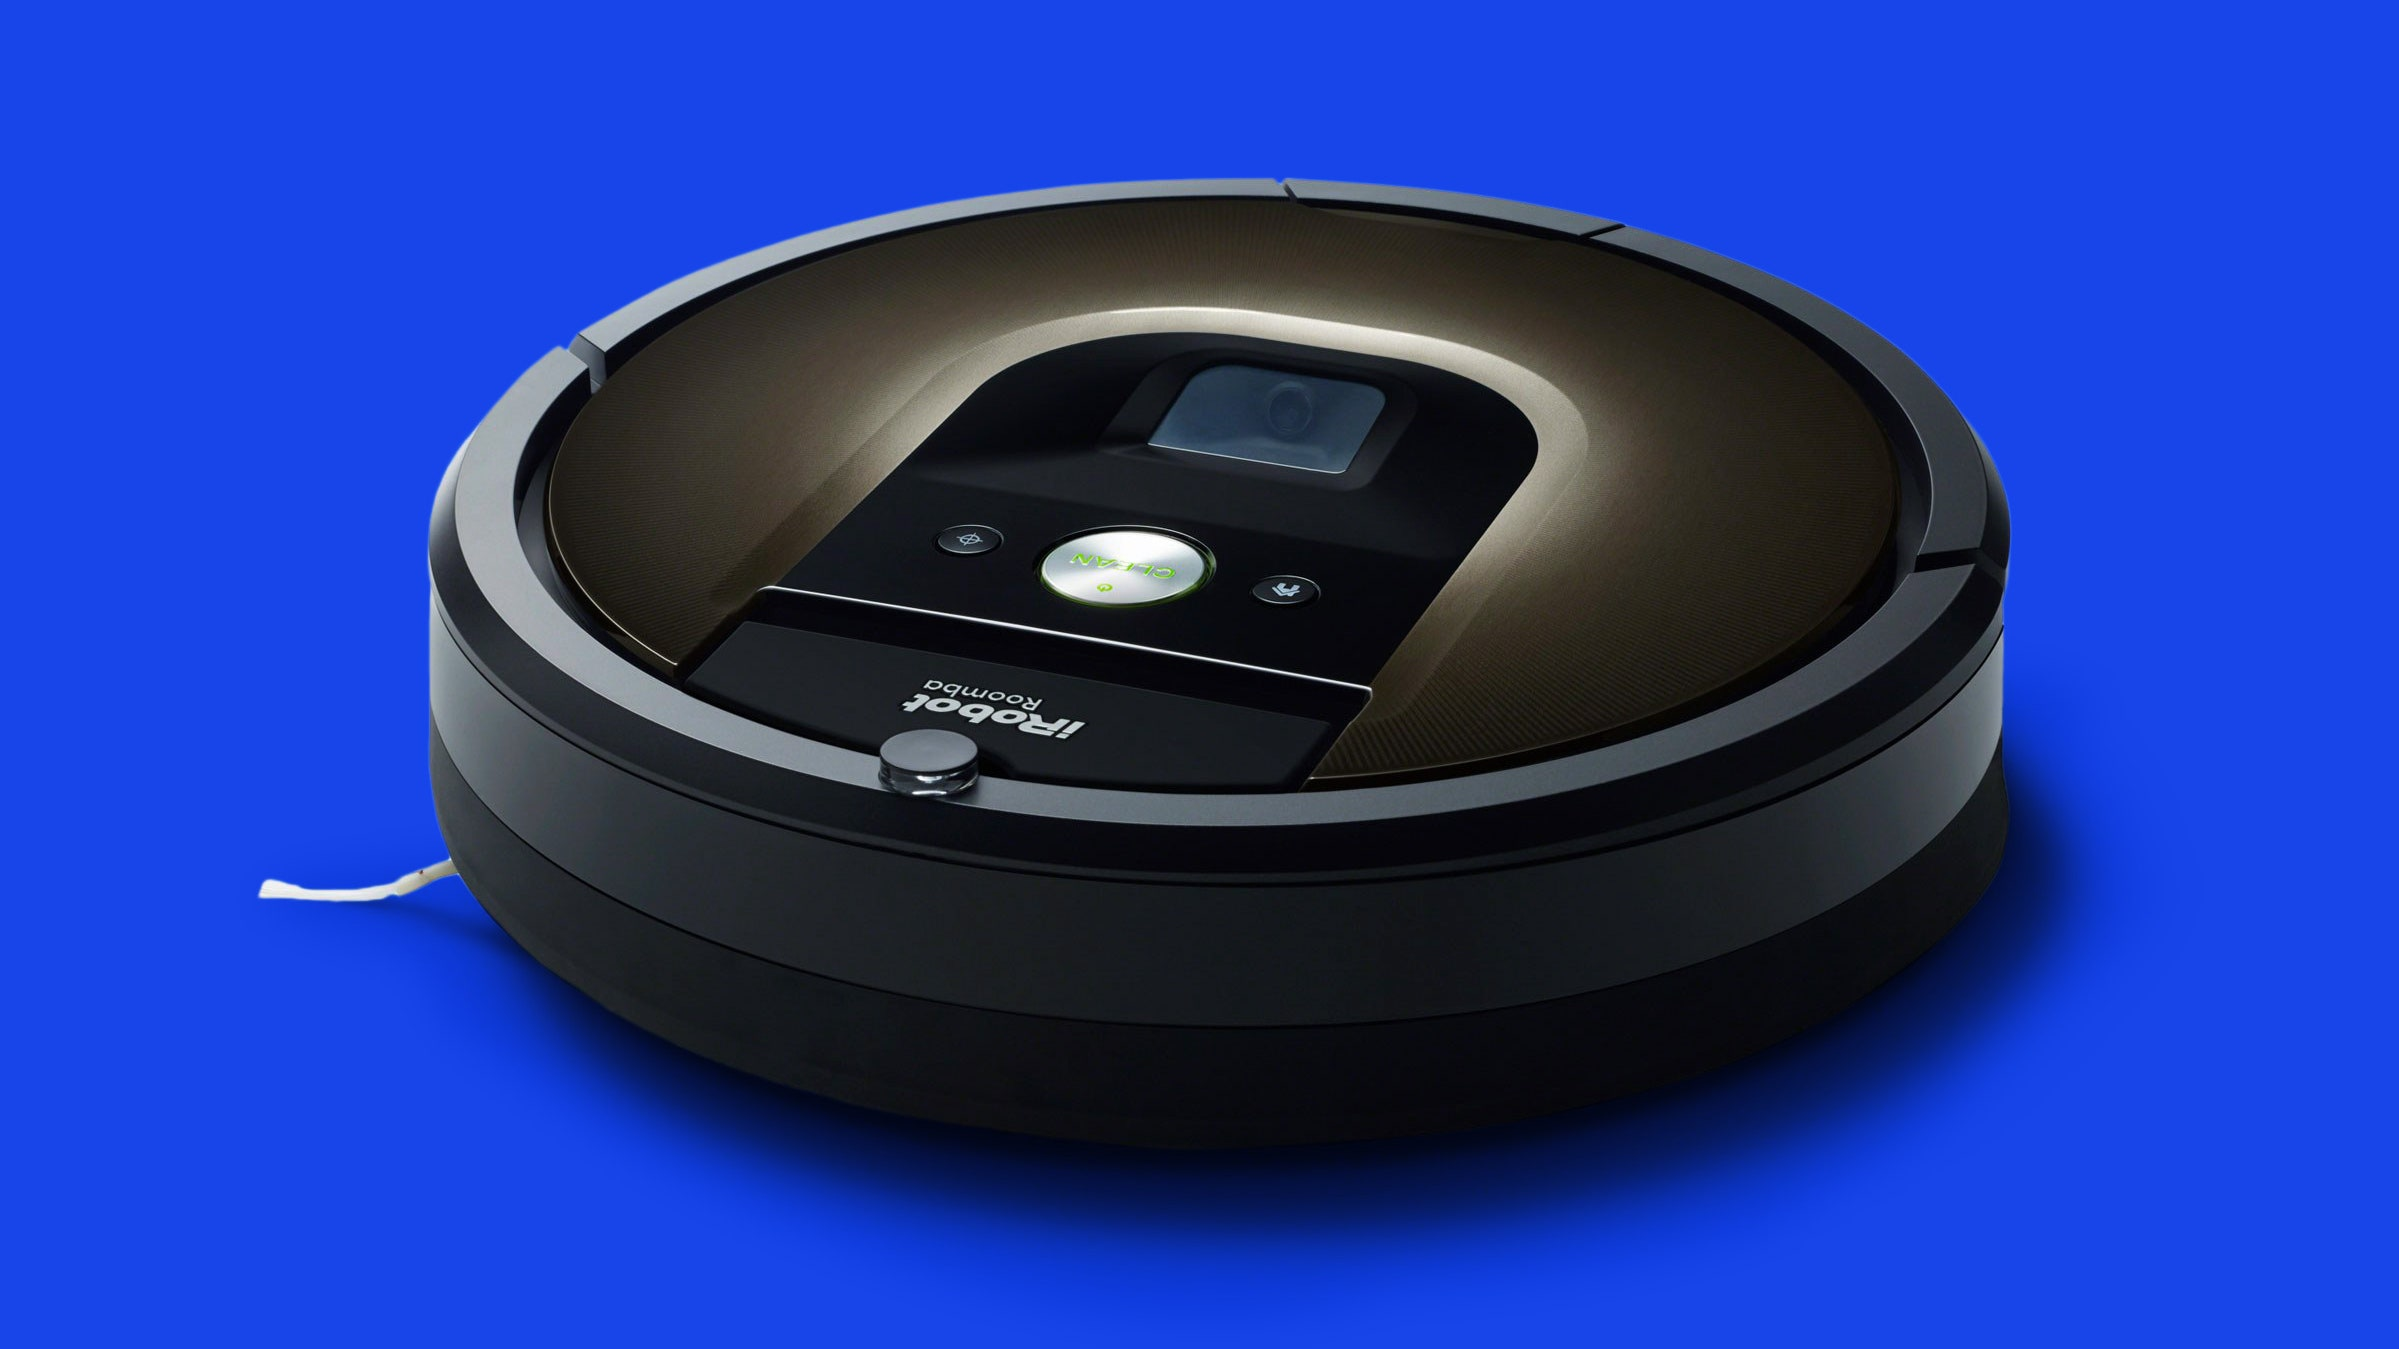 5 Things That Make Robotic Vacuum Cleaners a Home Essential